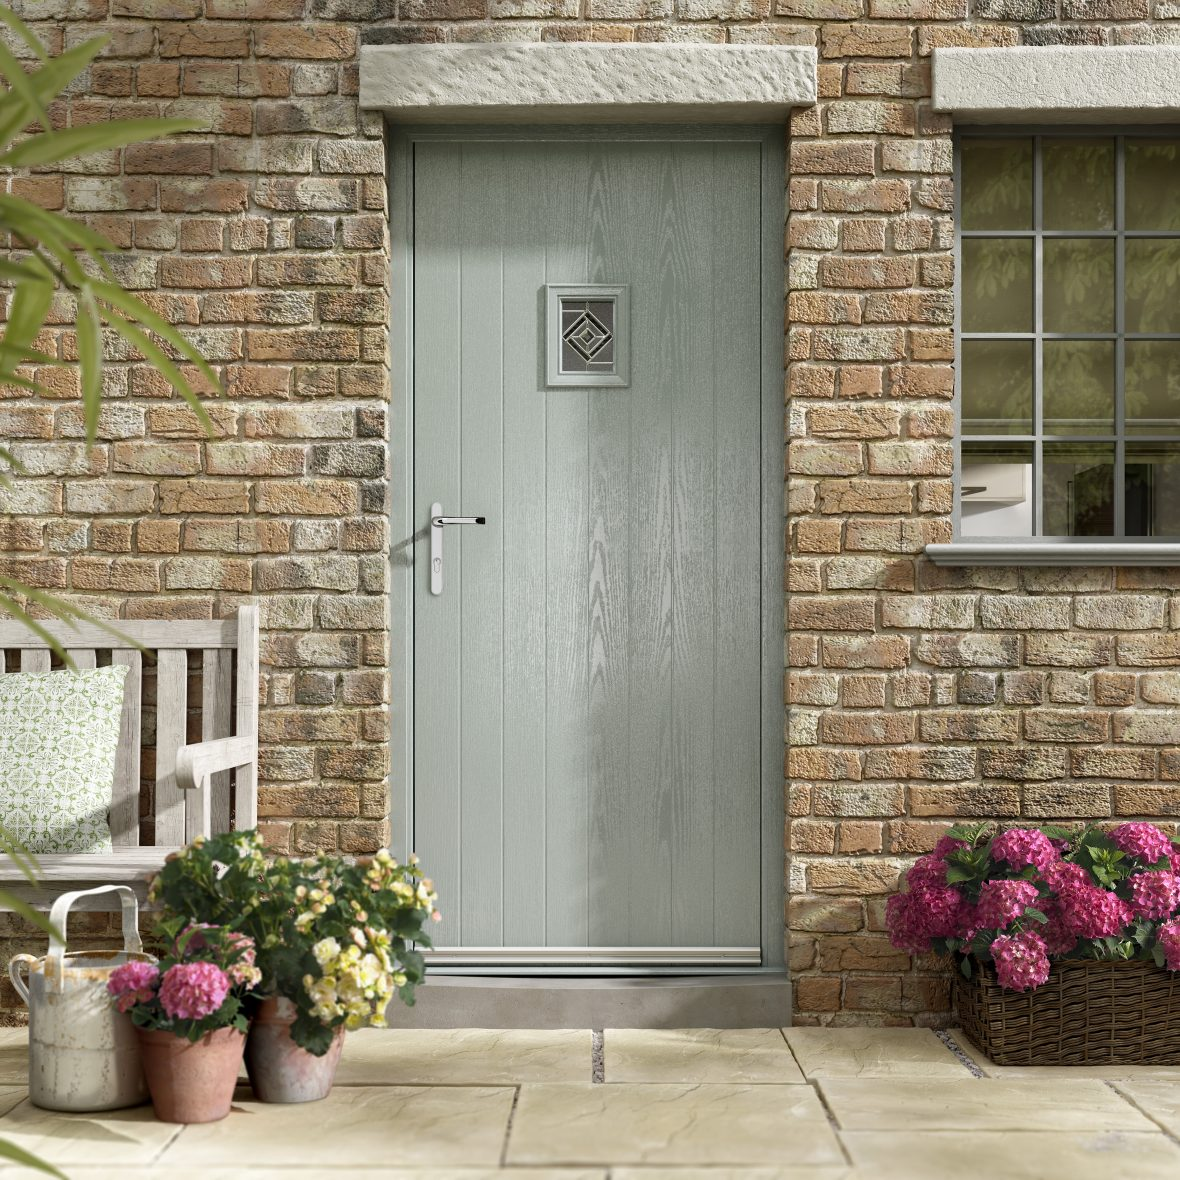 Stunning Aesthetics & Why Choose a Distinction Door? - Distinction Doors Pezcame.Com